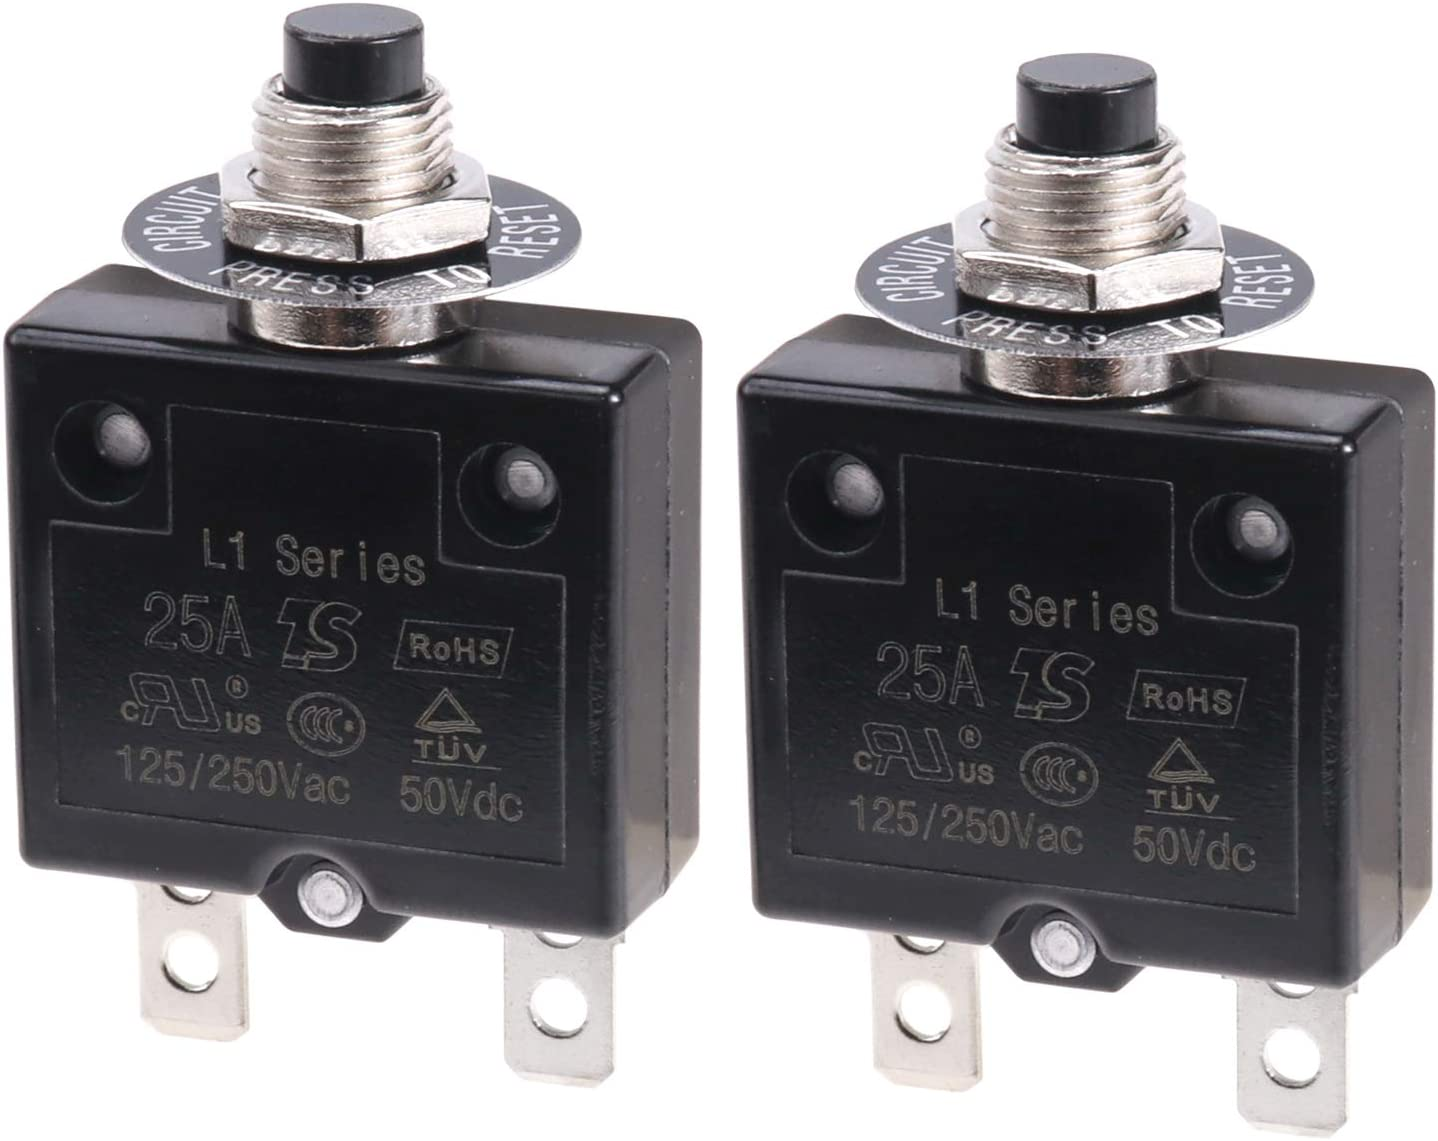 Thermal Overload Protector L1 Series 125-250V AC 50V DC Push ...